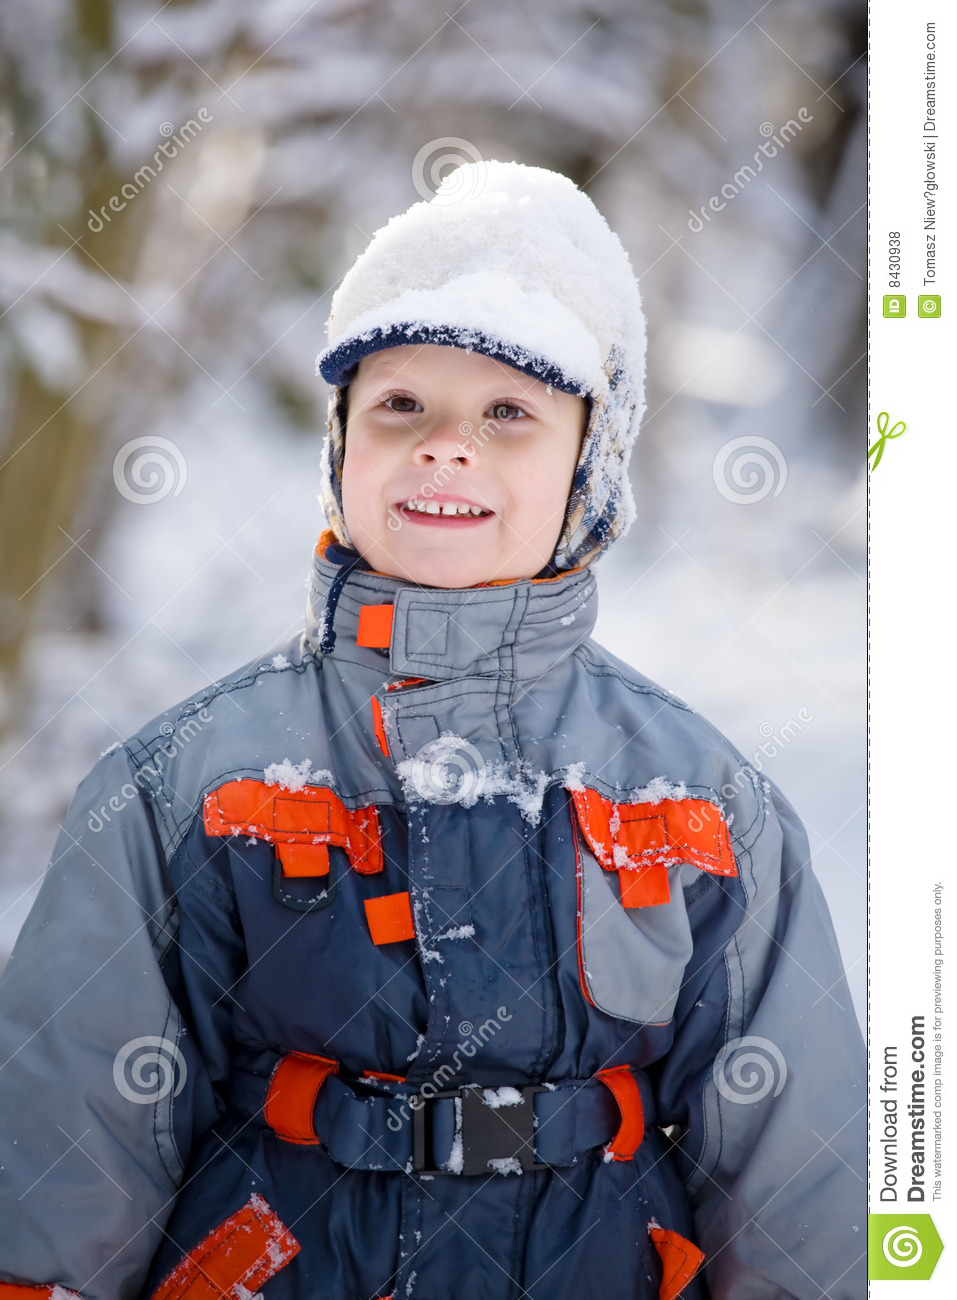 Boy and snow cap